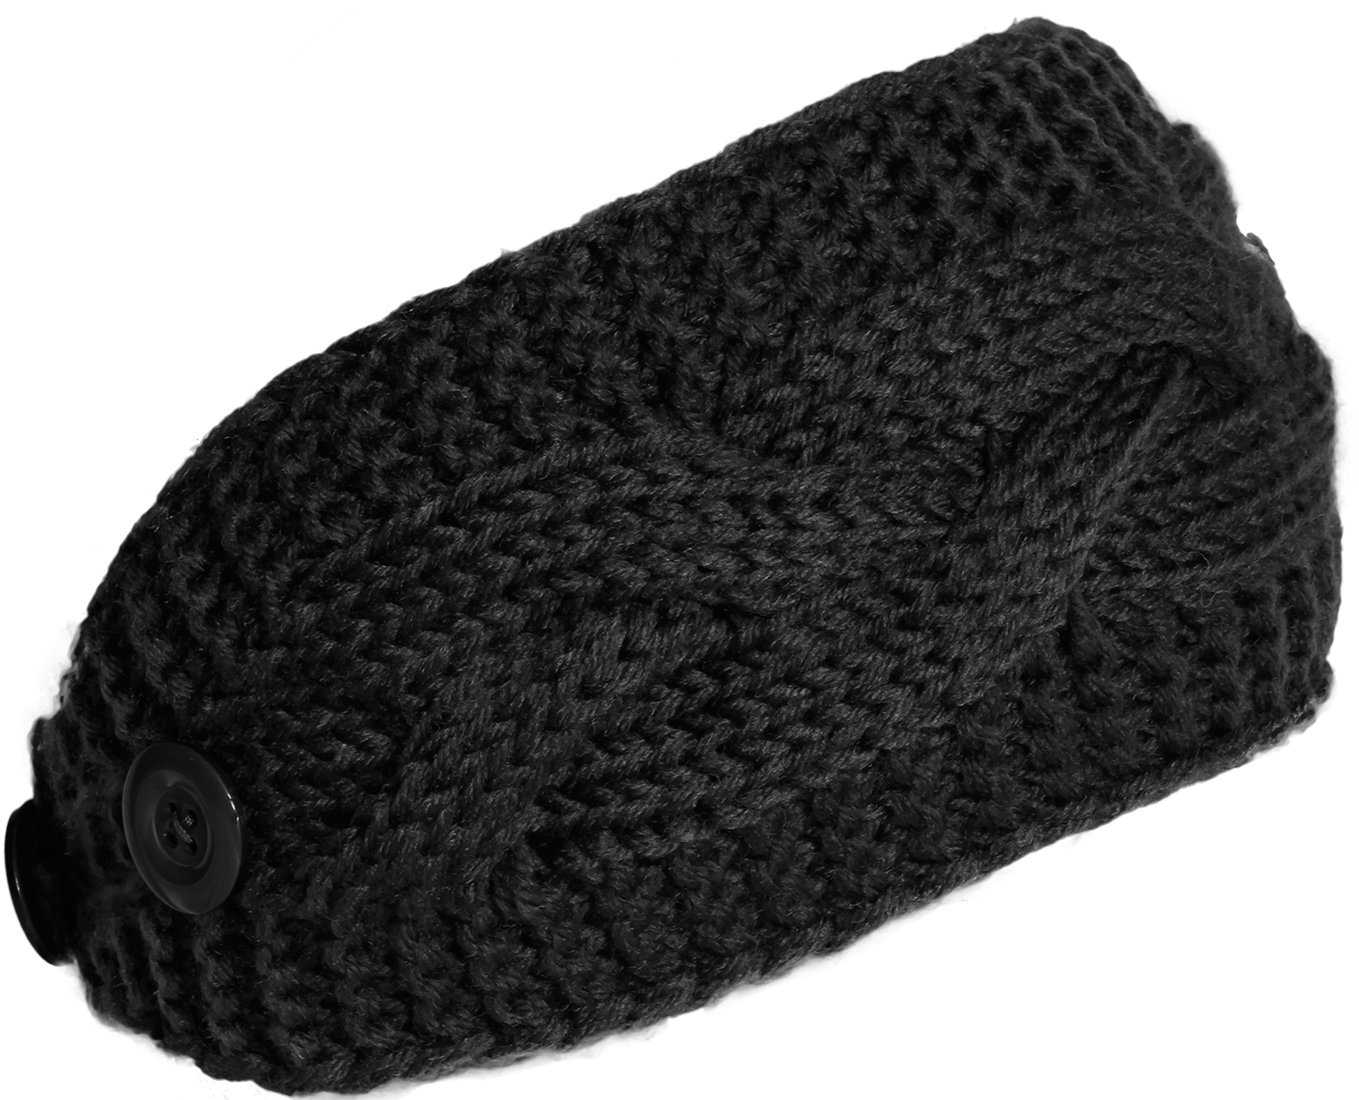 KMystic Plain Adjustable Winter Cable Knit Headband (Black)